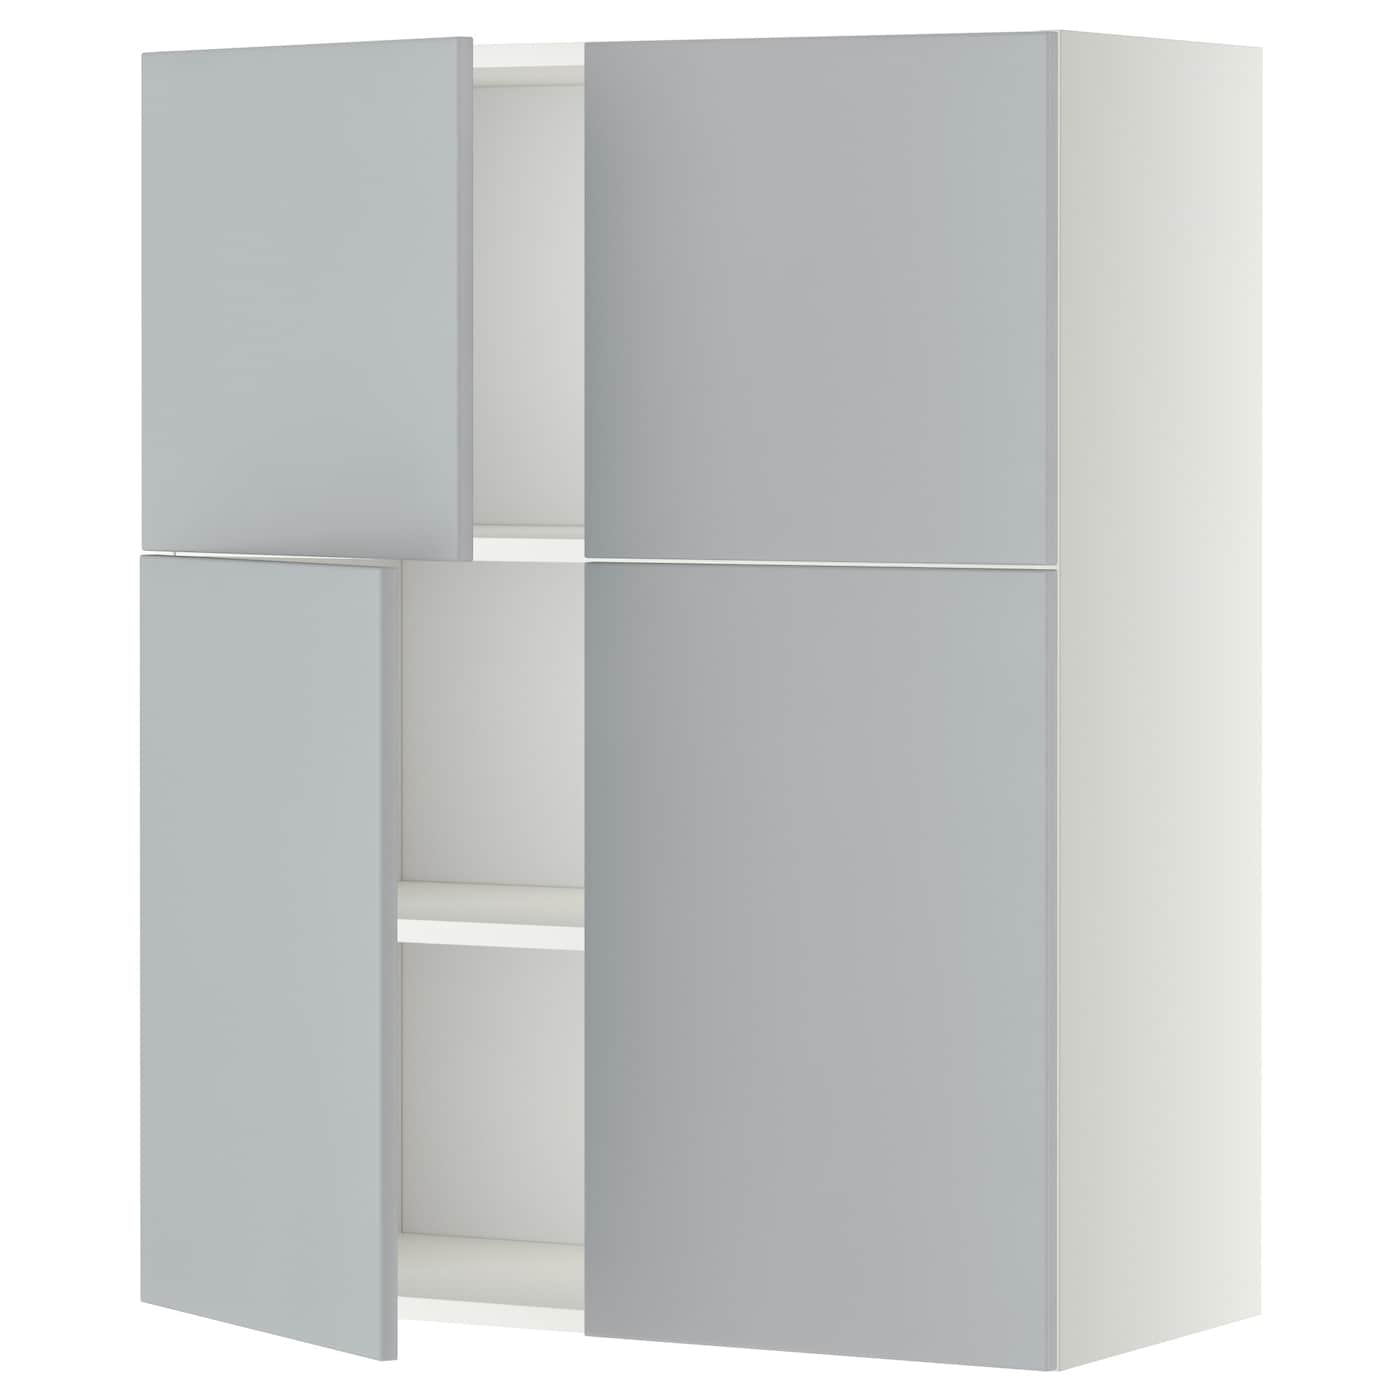 Metod wall cabinet with shelves 4 doors white veddinge for Long kitchen wall units